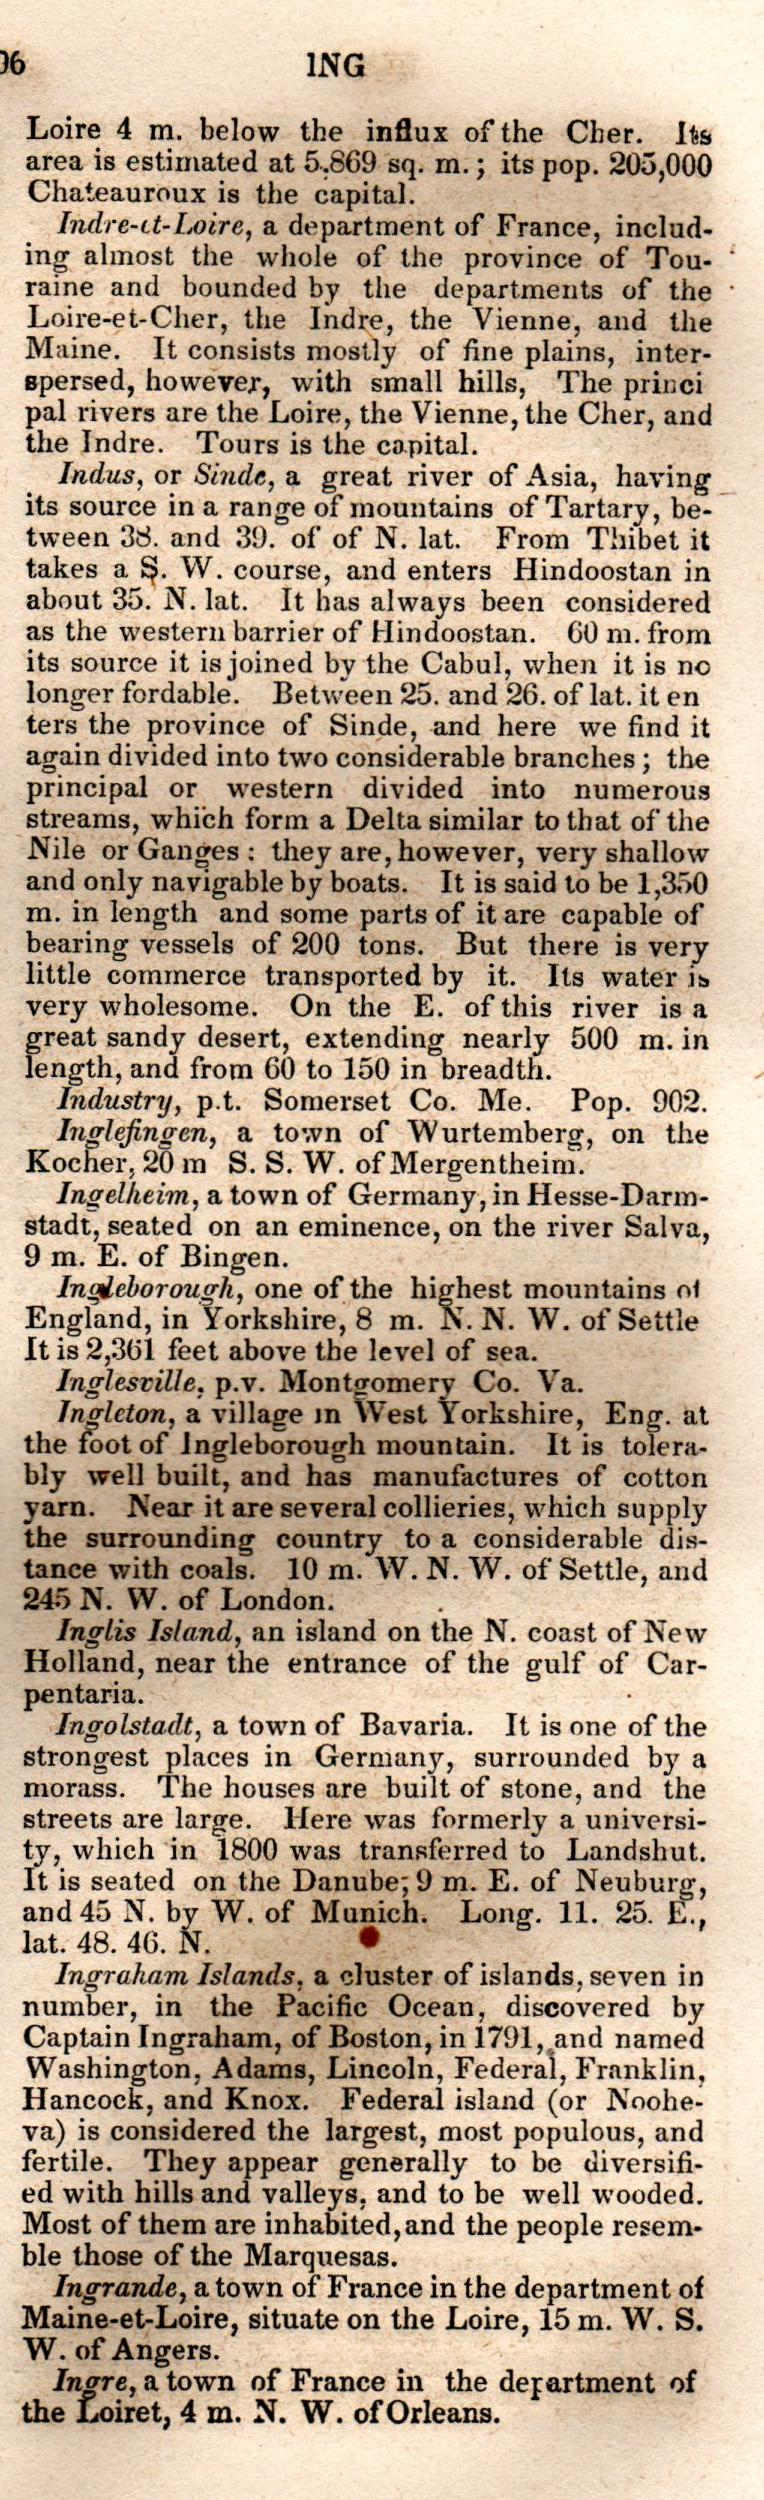 Brookes' Universal Gazetteer (1850), Page  396  Right Column